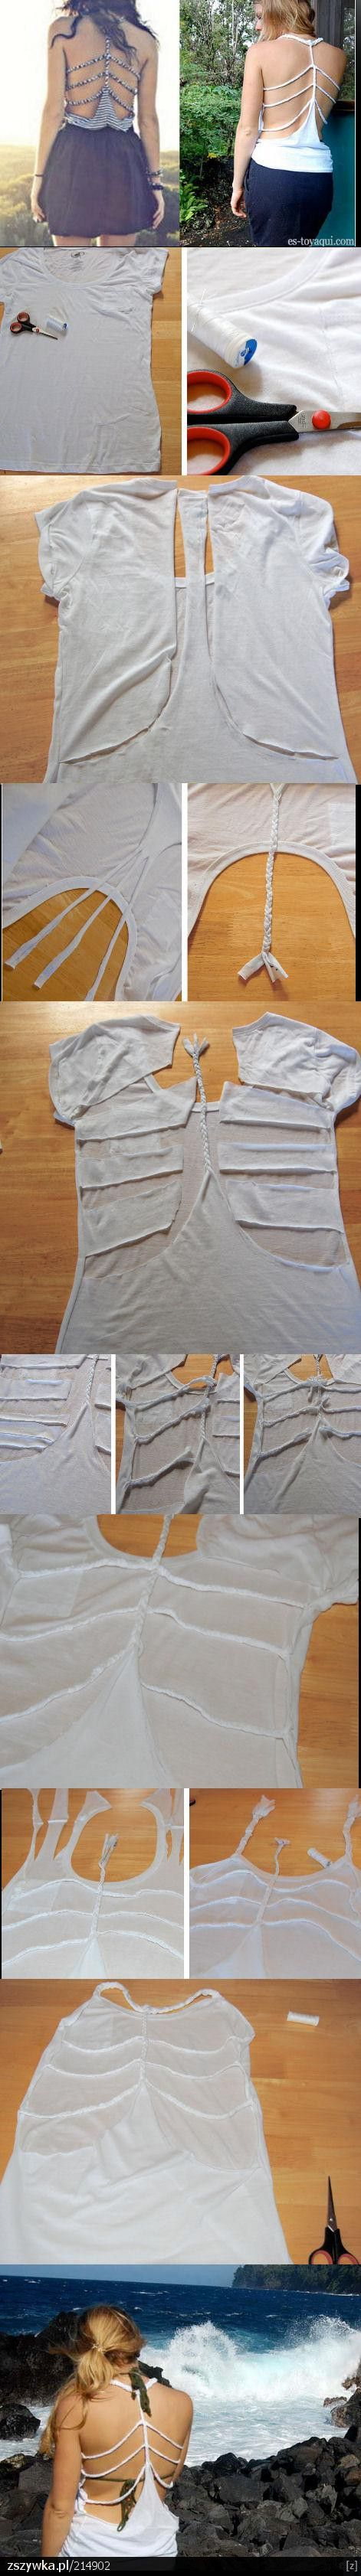 Open Back Cut Up Shirt - I probably wouldn't cut as much out of the back, but I might be able to fashion on cute work out shirt to keep me cool, and be cute with a Bandeau